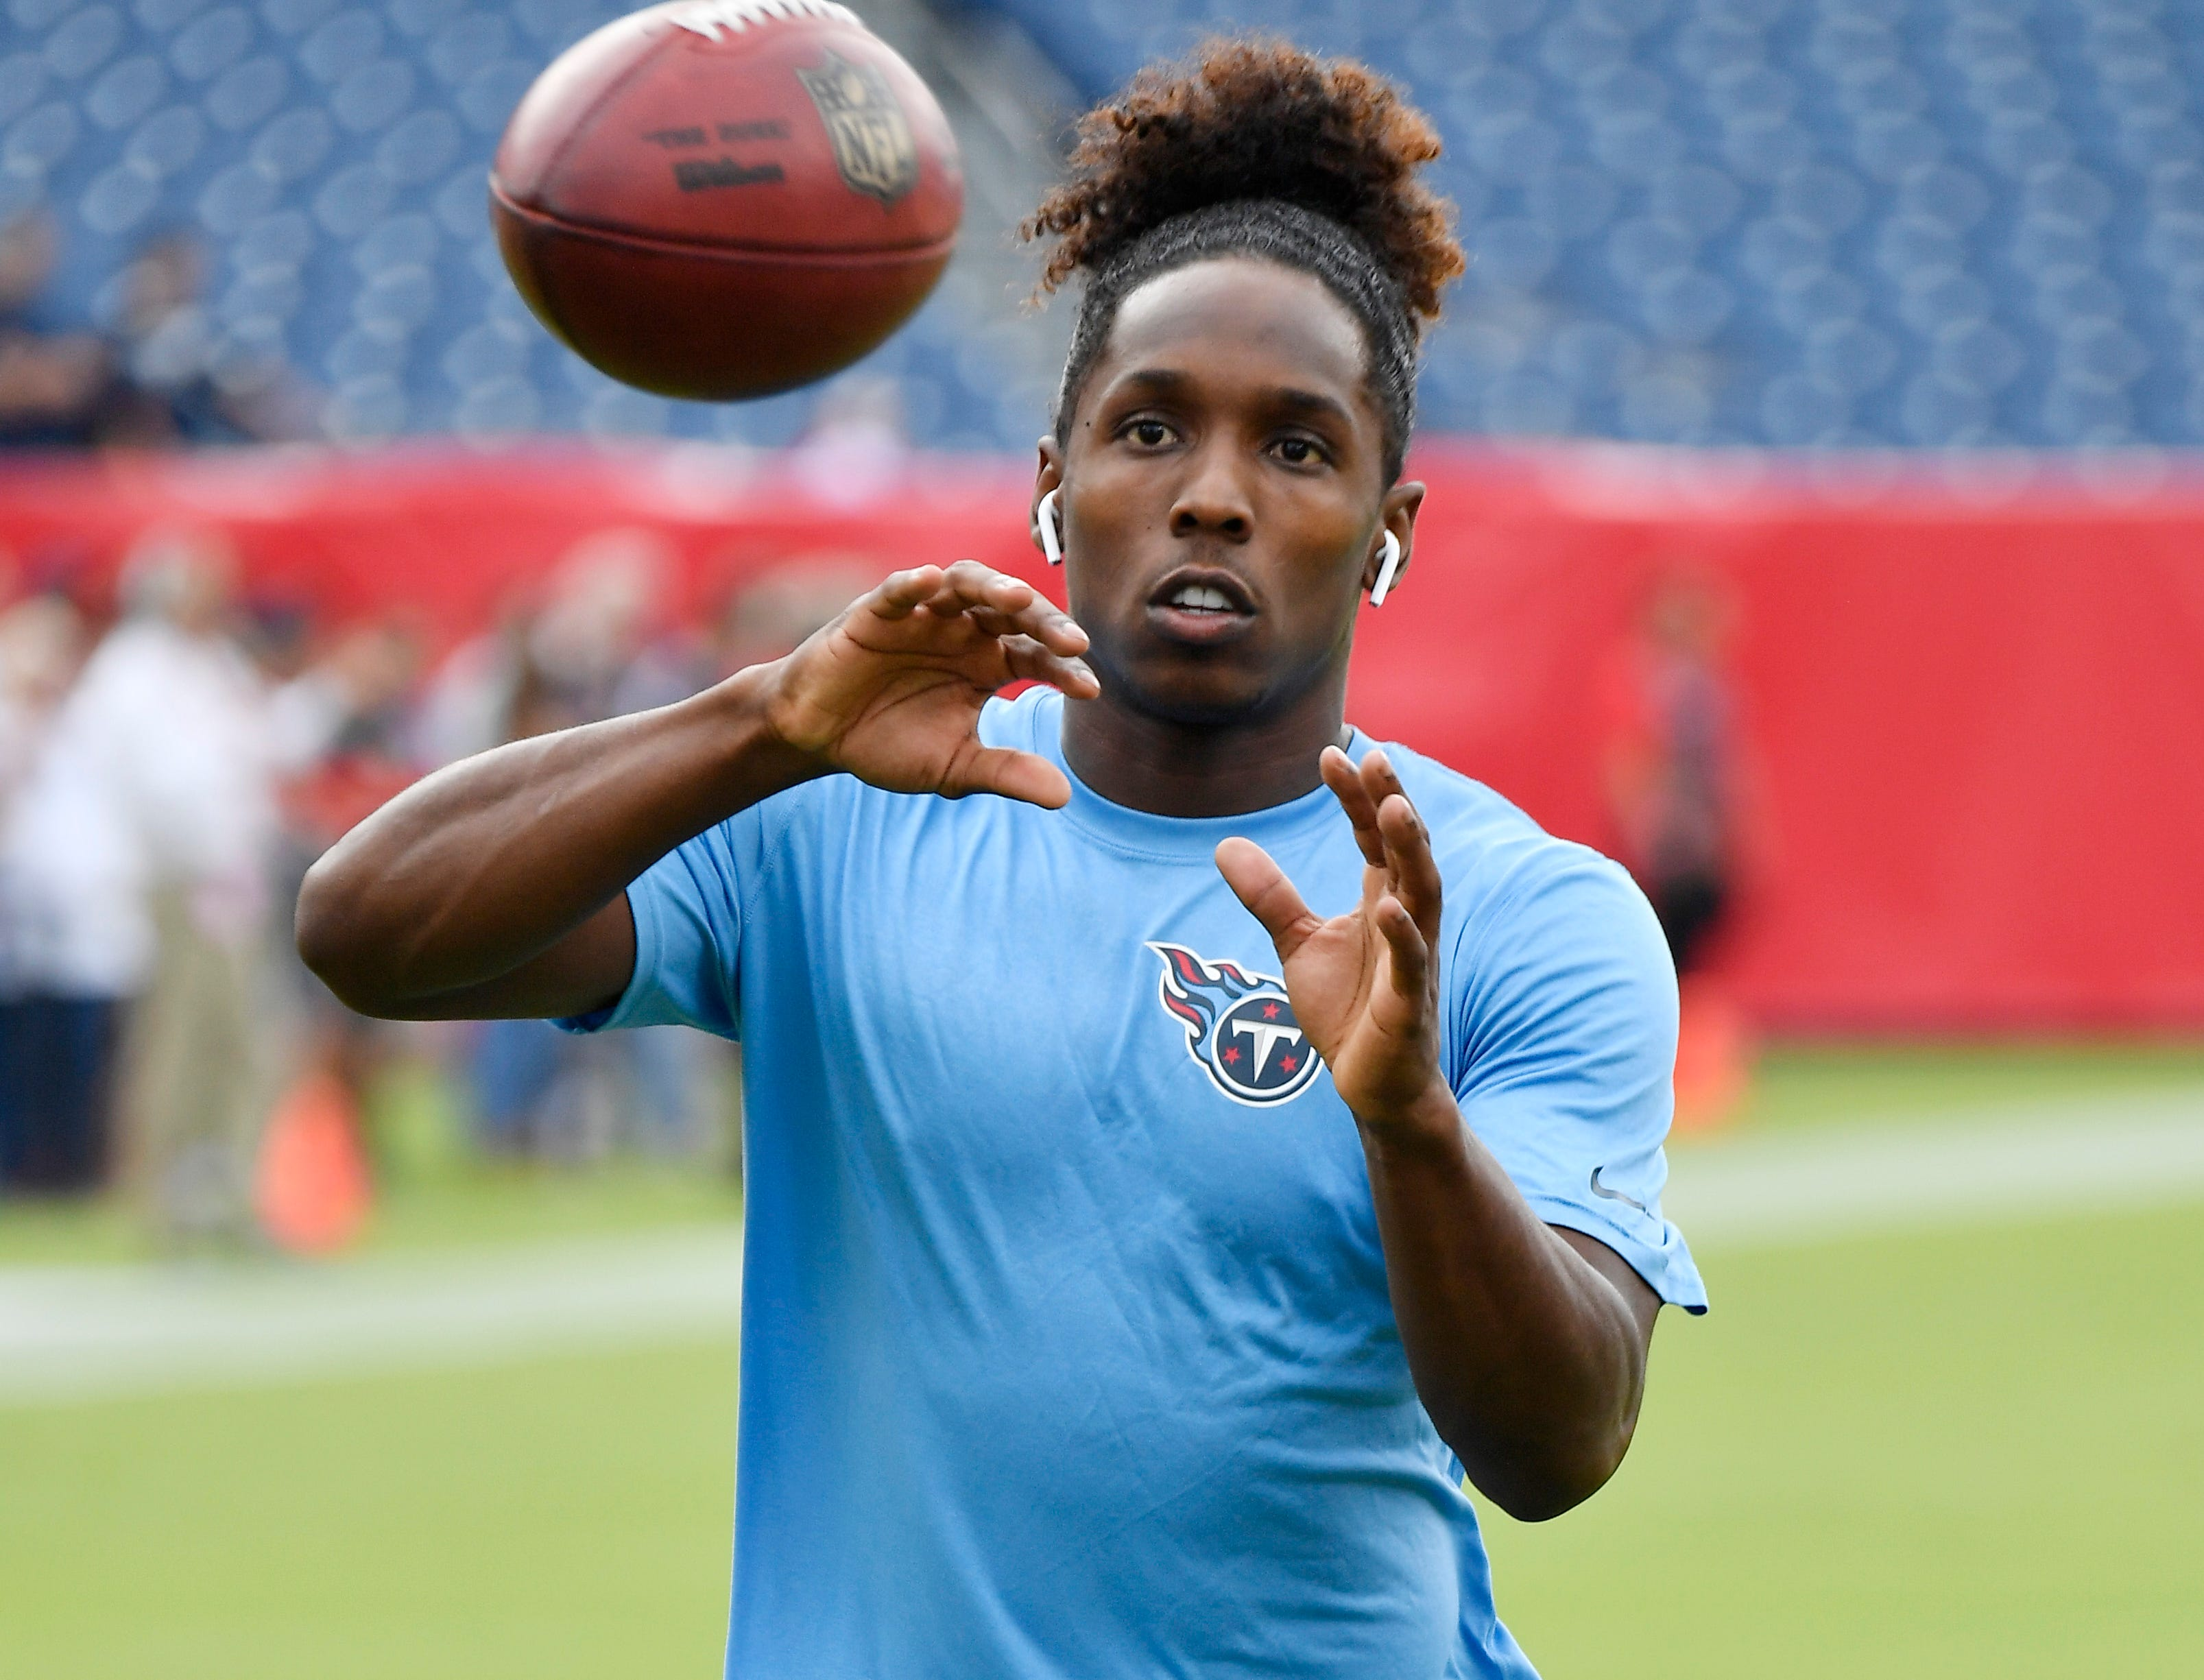 Titans cornerback Adoree' Jackson (25) pulls in a catch before the game against the Texans at Nissan Stadium Sunday, Sept. 16, 2018, in Nashville, Tenn.